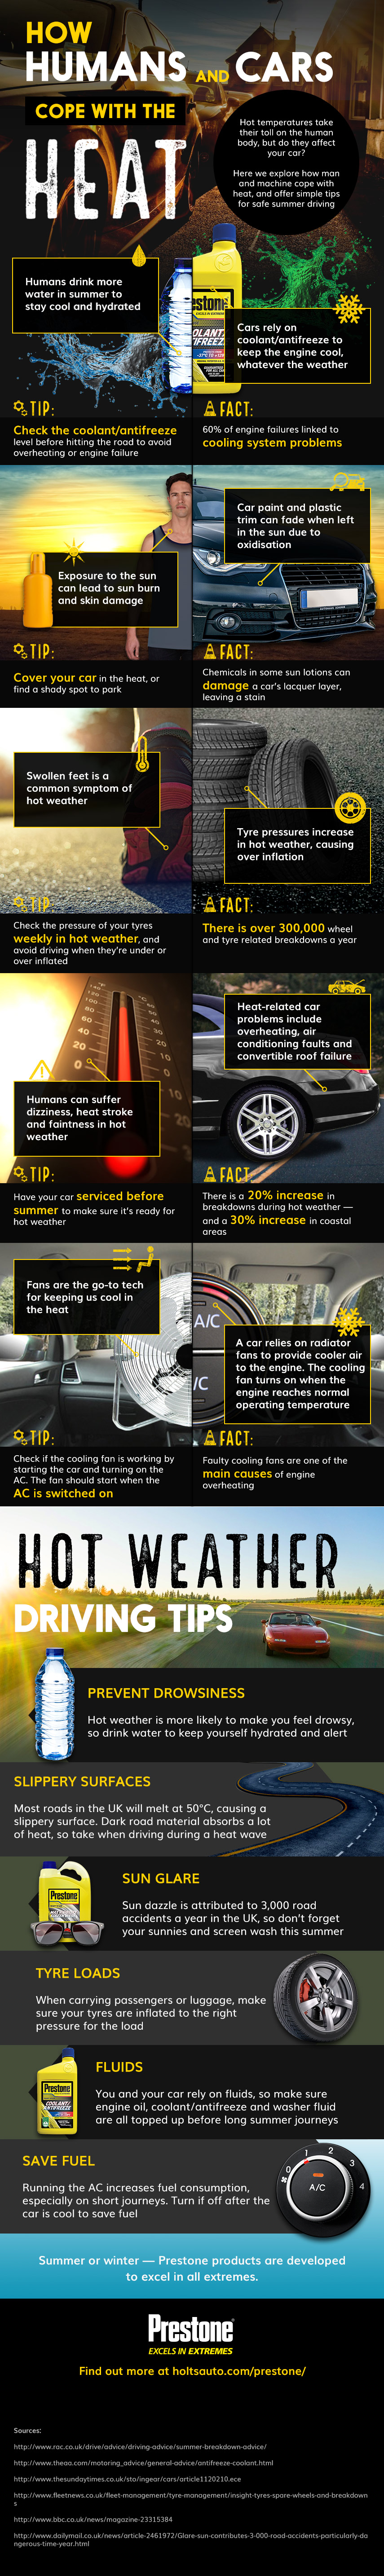 humans and cars infographic